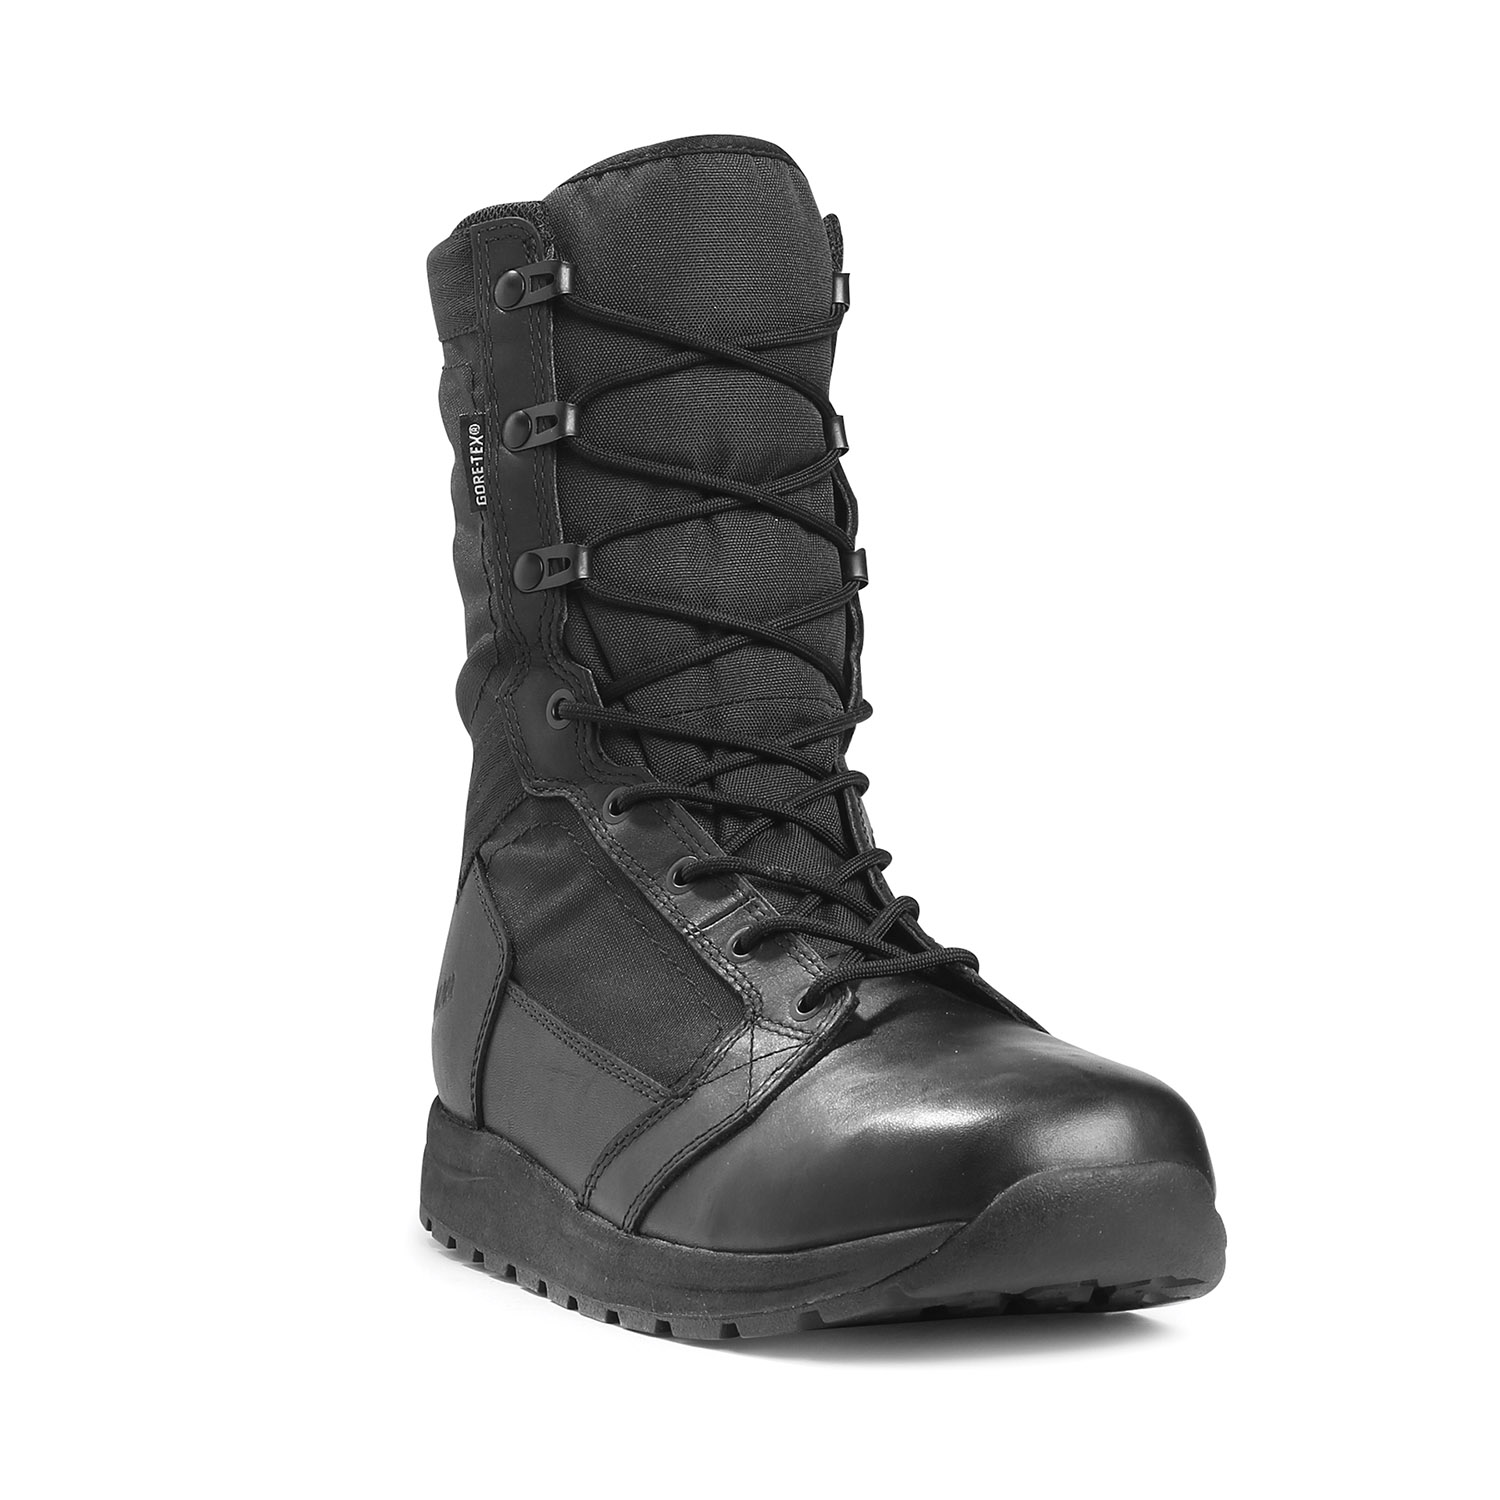 Danner gear at Galls, the public safety authority